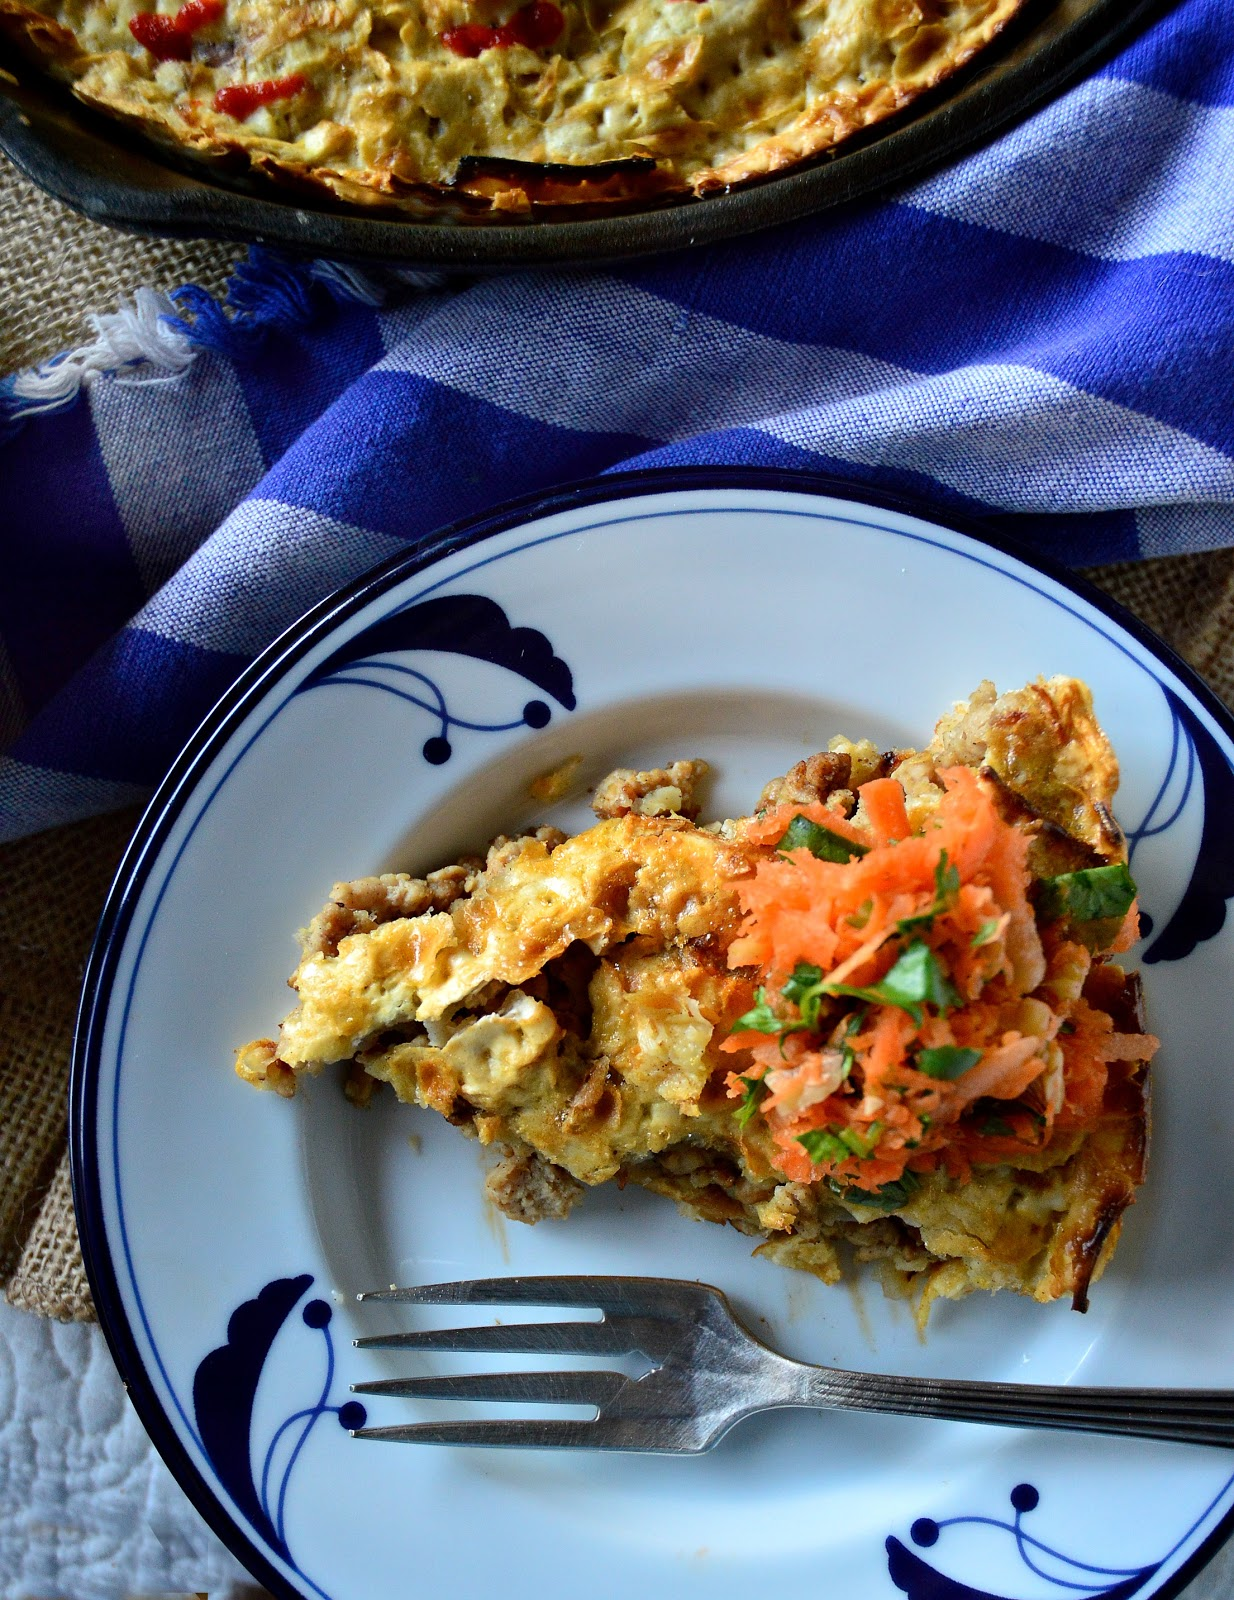 This cardamom coffee flavored ground chicken is cooked with onion and garlic and stuffed into a matzoh pie shell. Topped with a carrot salad this is a new way to do dinner! #matzoh #passoverrecipes #pie #cardamom www.thisishwicook.com